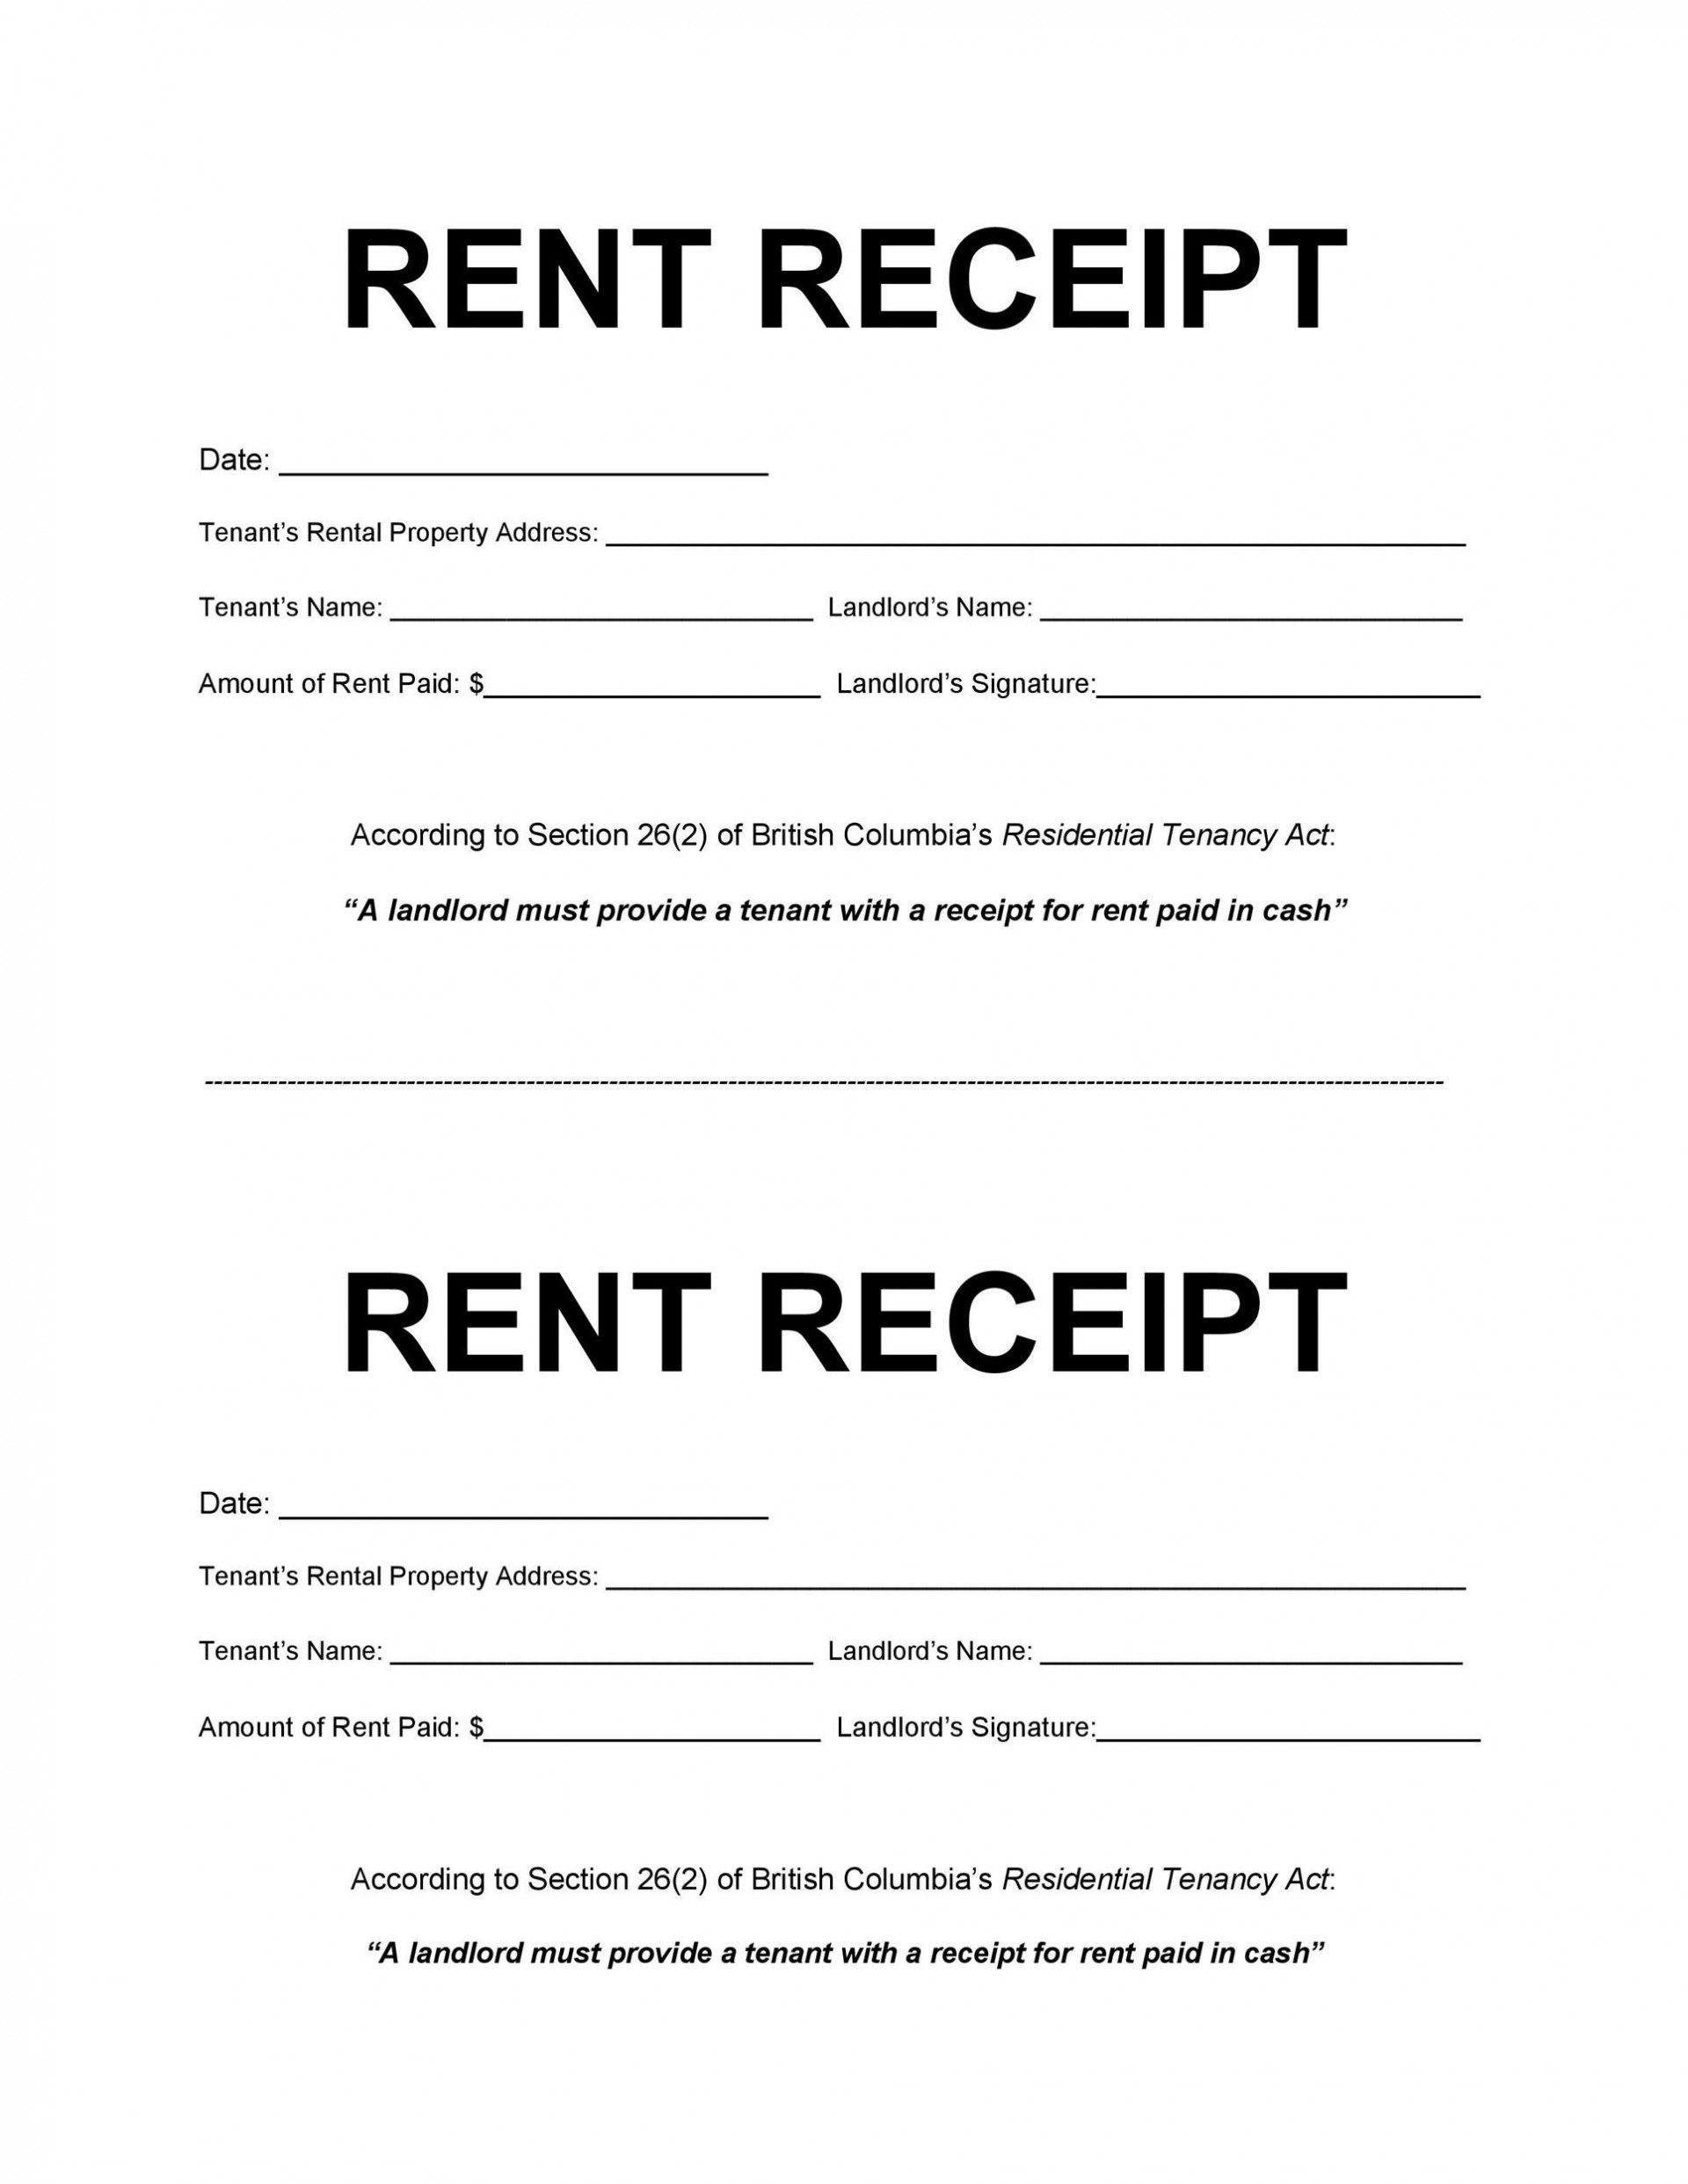 008 Rare Rent Payment Receipt Template Image  Excel Free1920